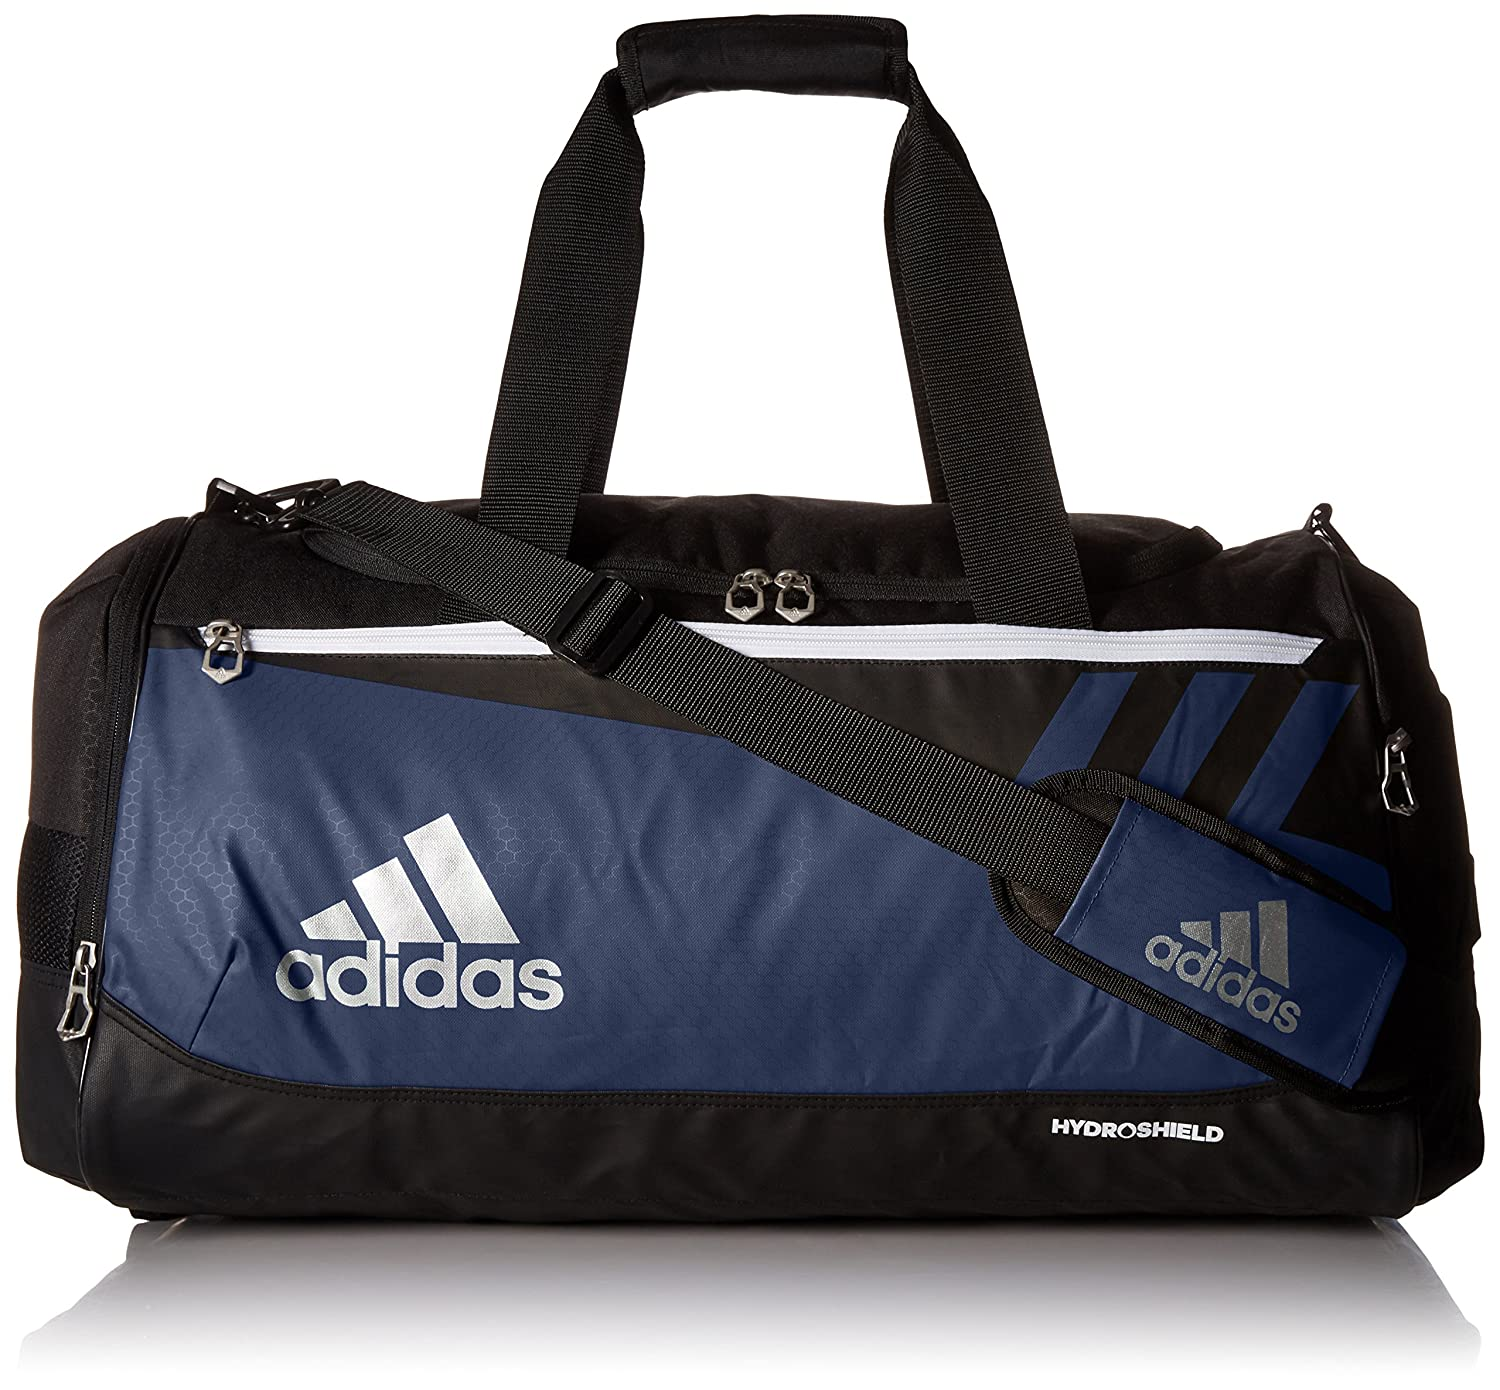 523fe0052 Adidas Men's and Women's Polyester Team Issue Duffel Bag (Power Red and  Black): Amazon.in: Bags, Wallets & Luggage